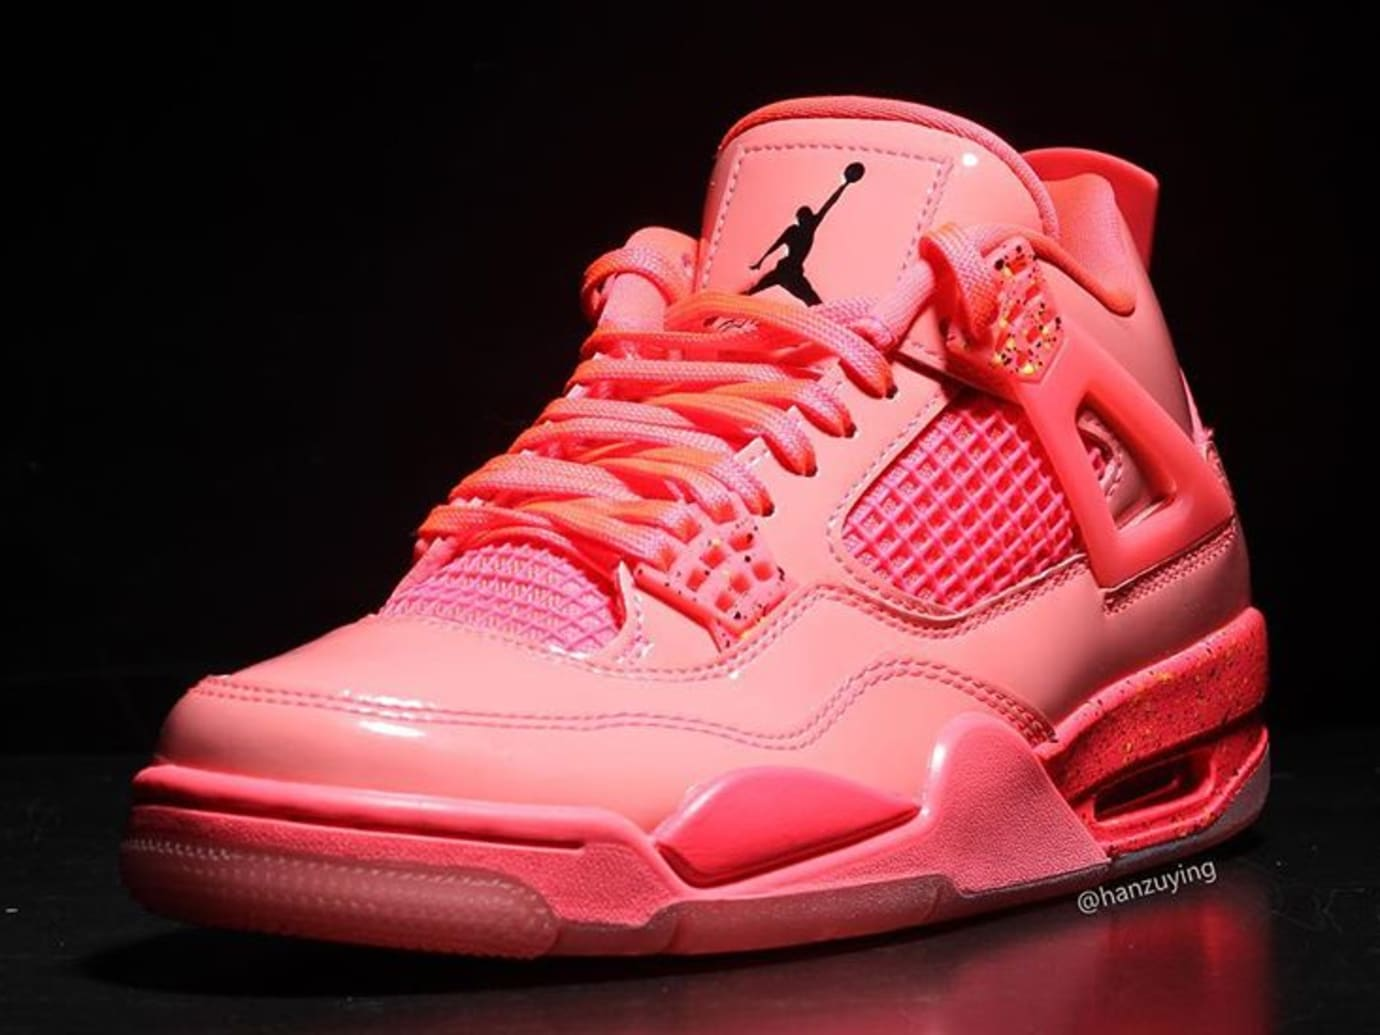 best website c8325 f17b8 ... WMNS Air Jordan 4  Hot Punch  AQ9128-600 Release Date